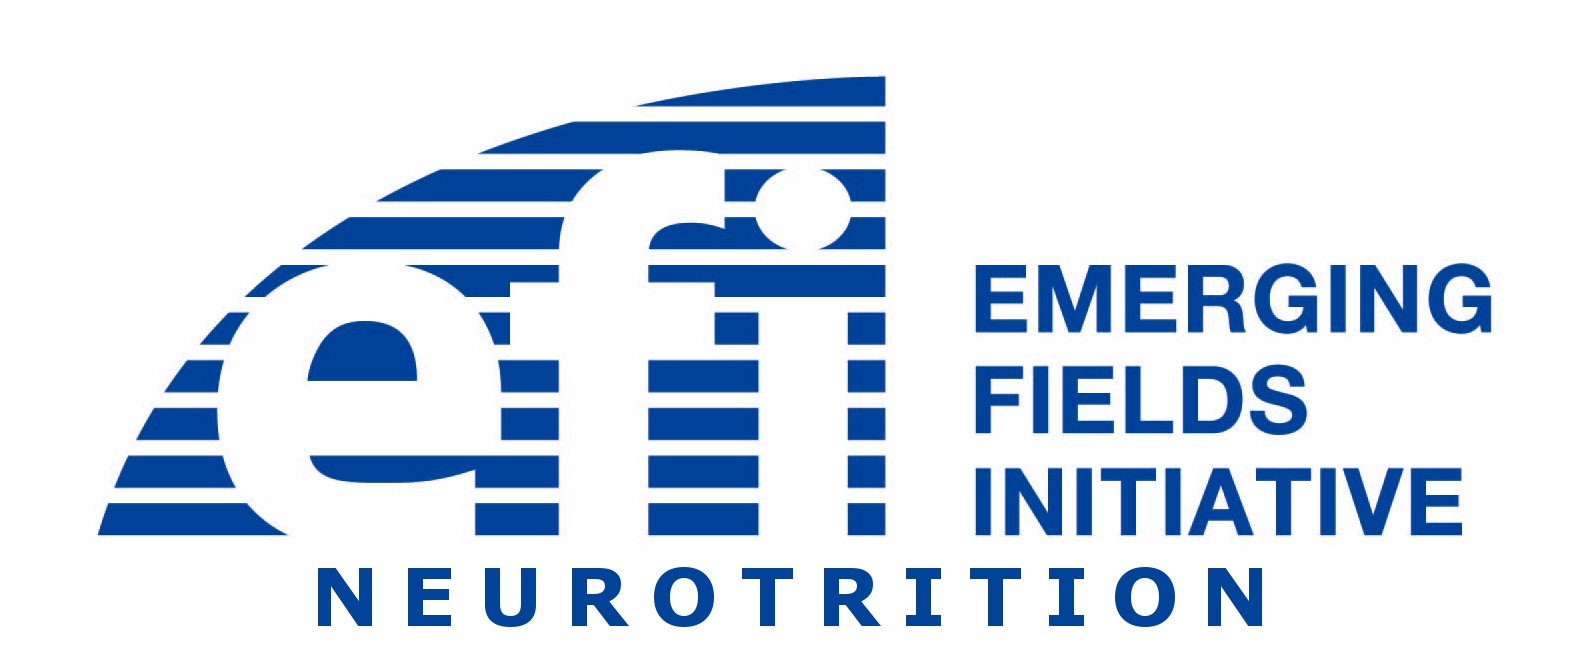 Emerging Fields Initiative Neurotrition